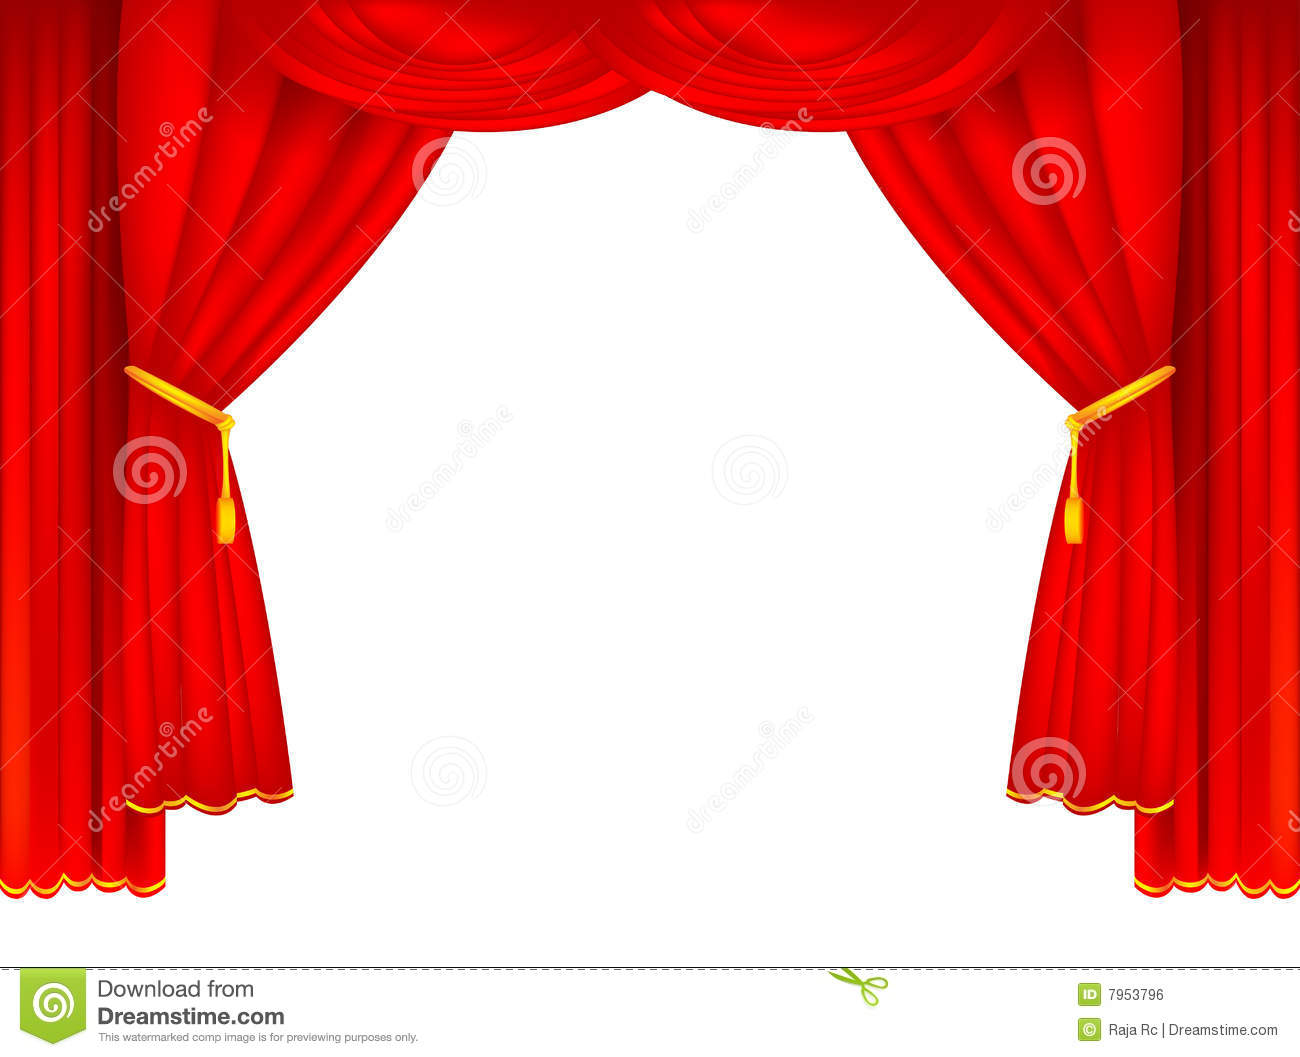 Stage curtains royalty free stock image image 7953796